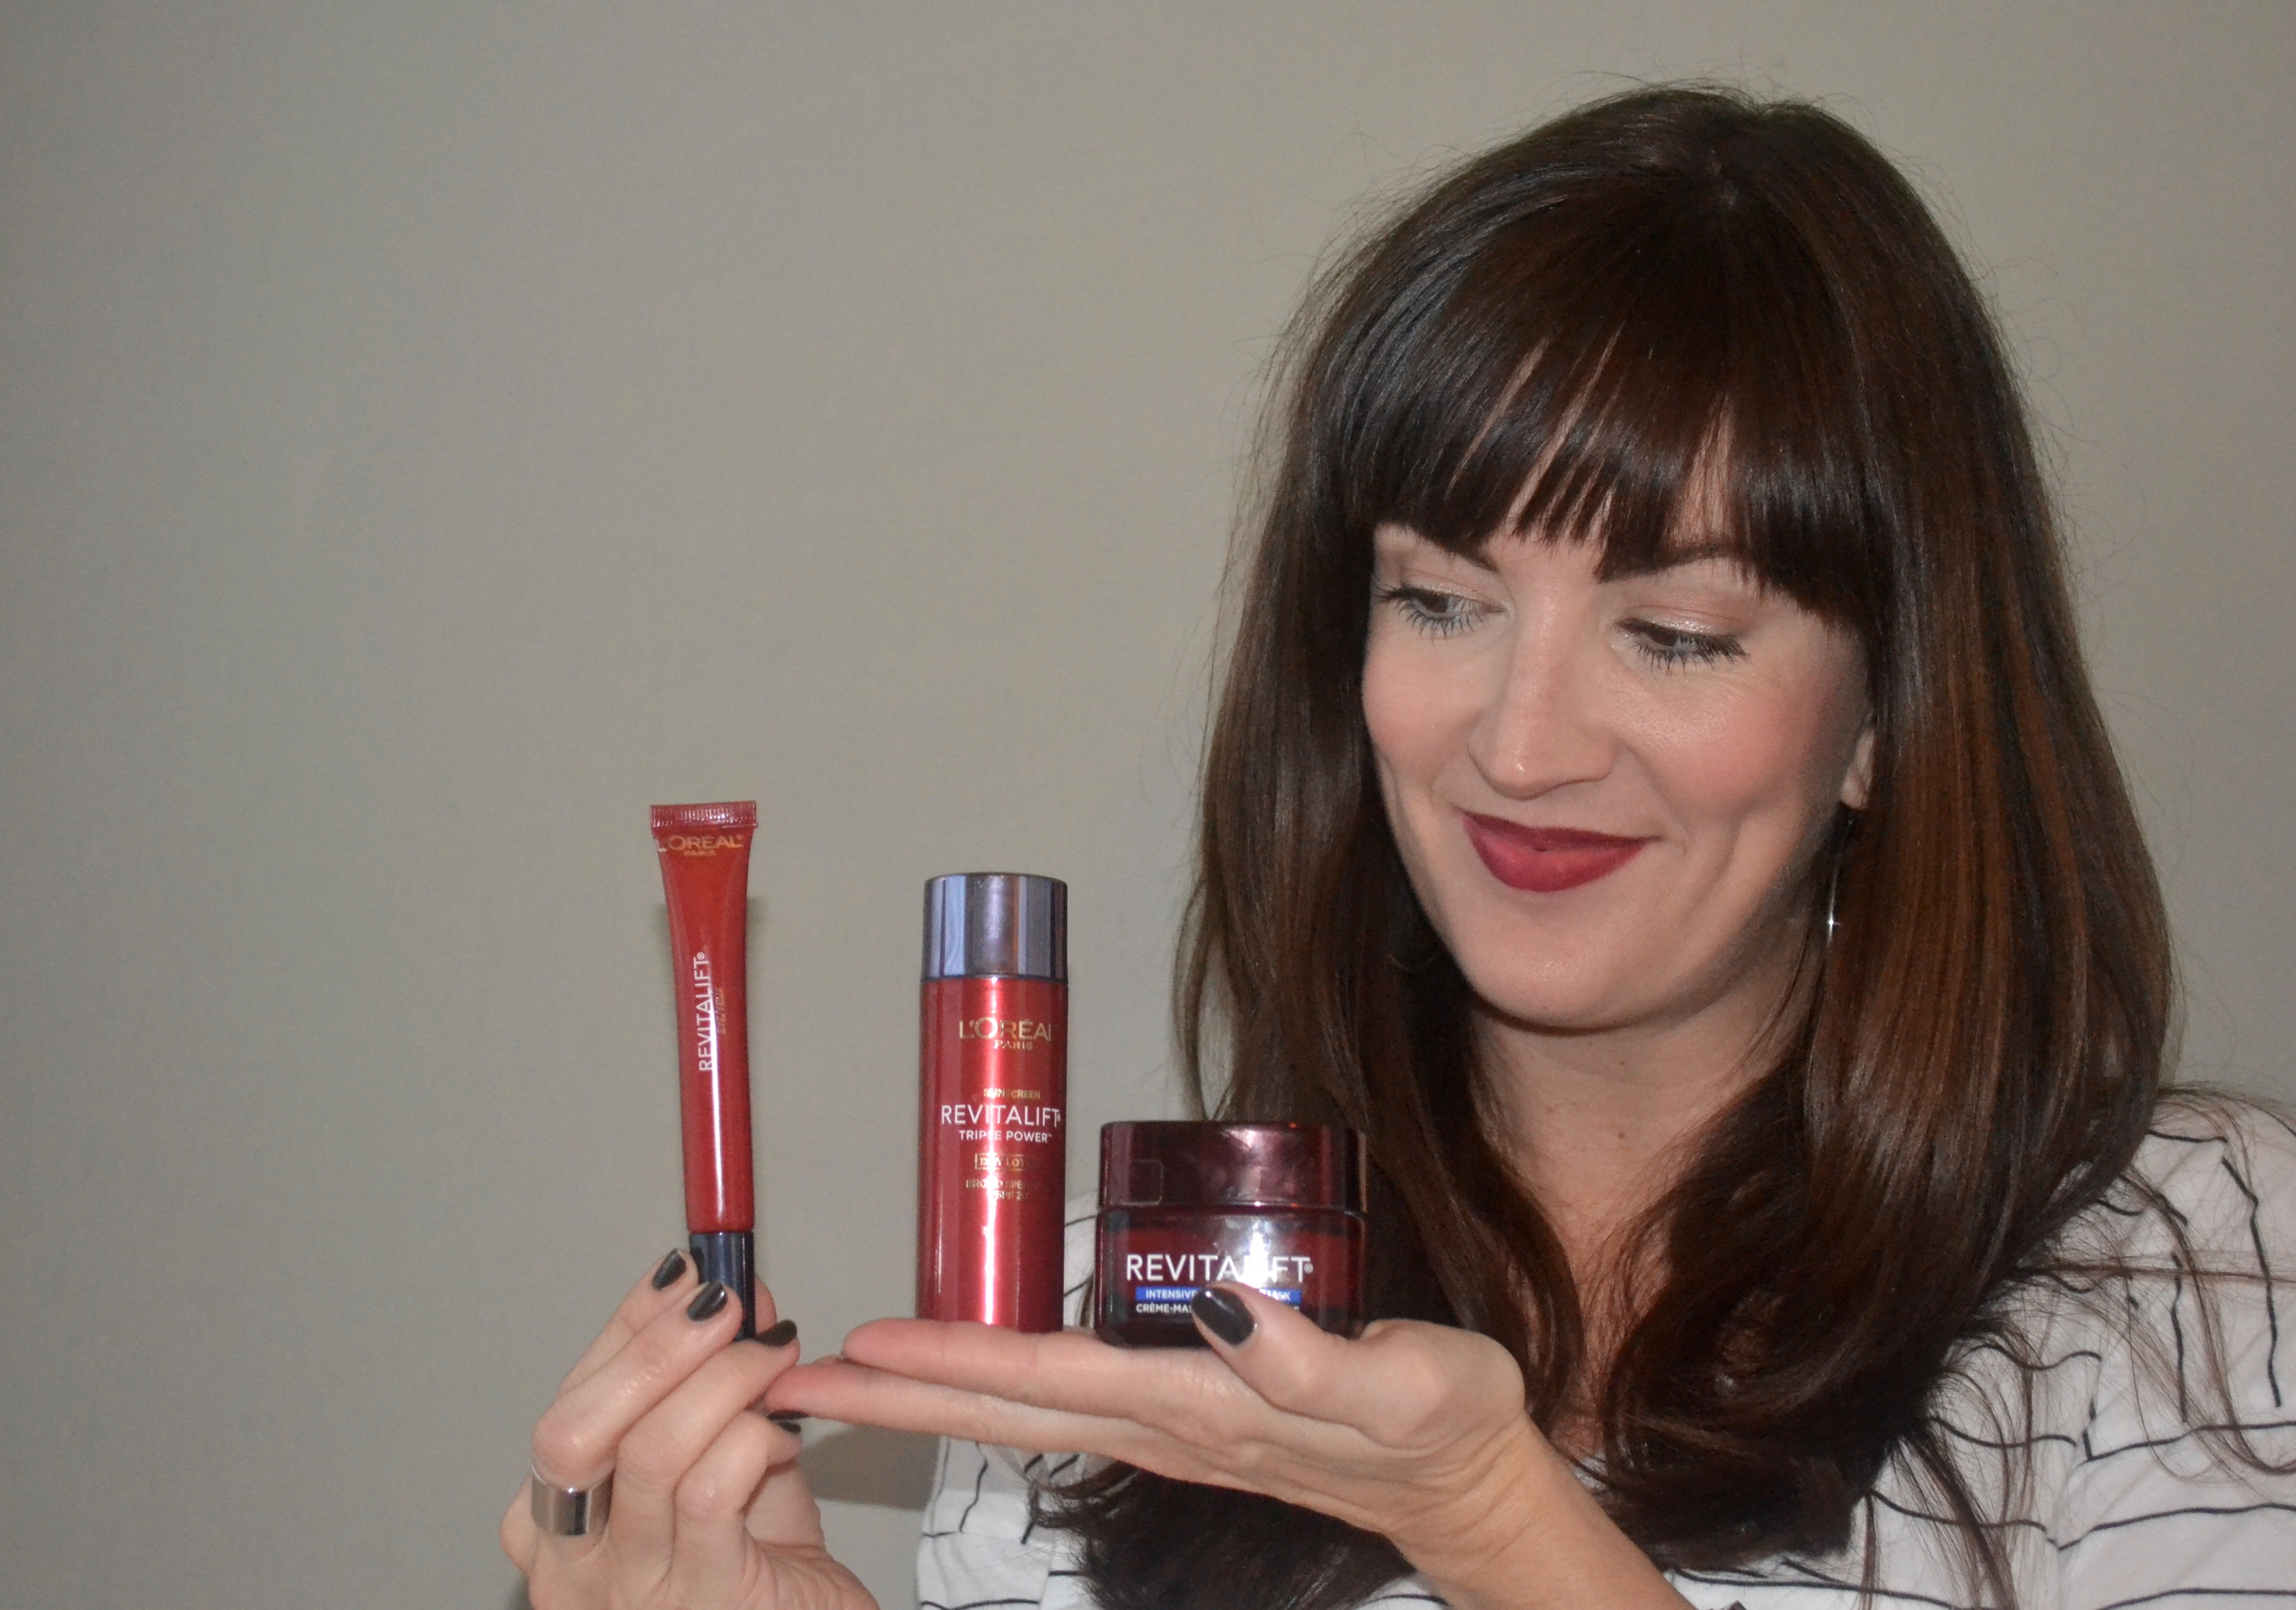 Slow The Aging Process Day & Night With L'Oreal RevitaLift™